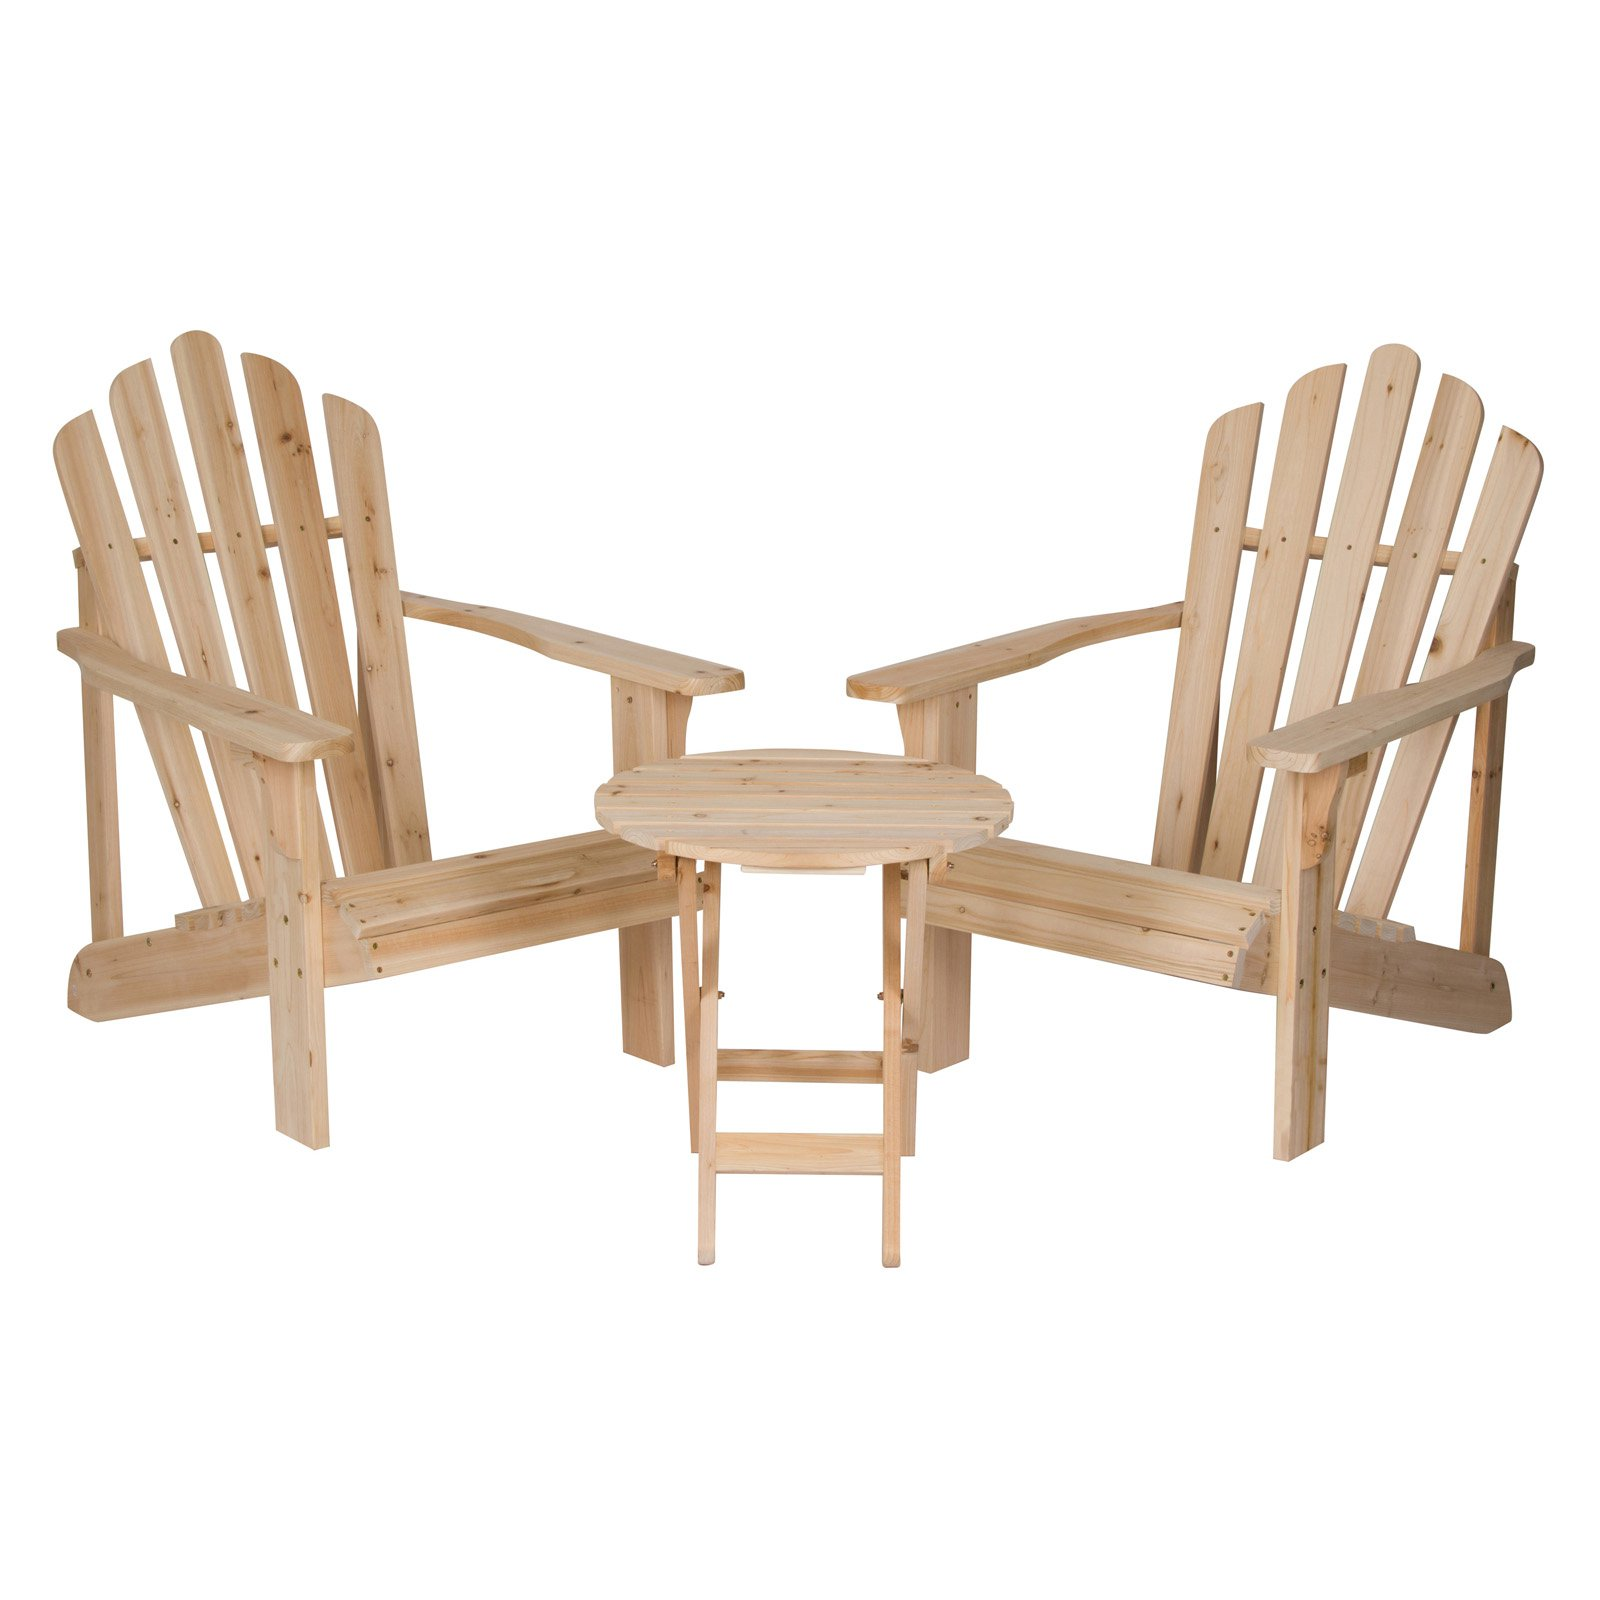 Shine Company  Cedar Adirondack Chair Pair with Side Table - 3 pc. Set